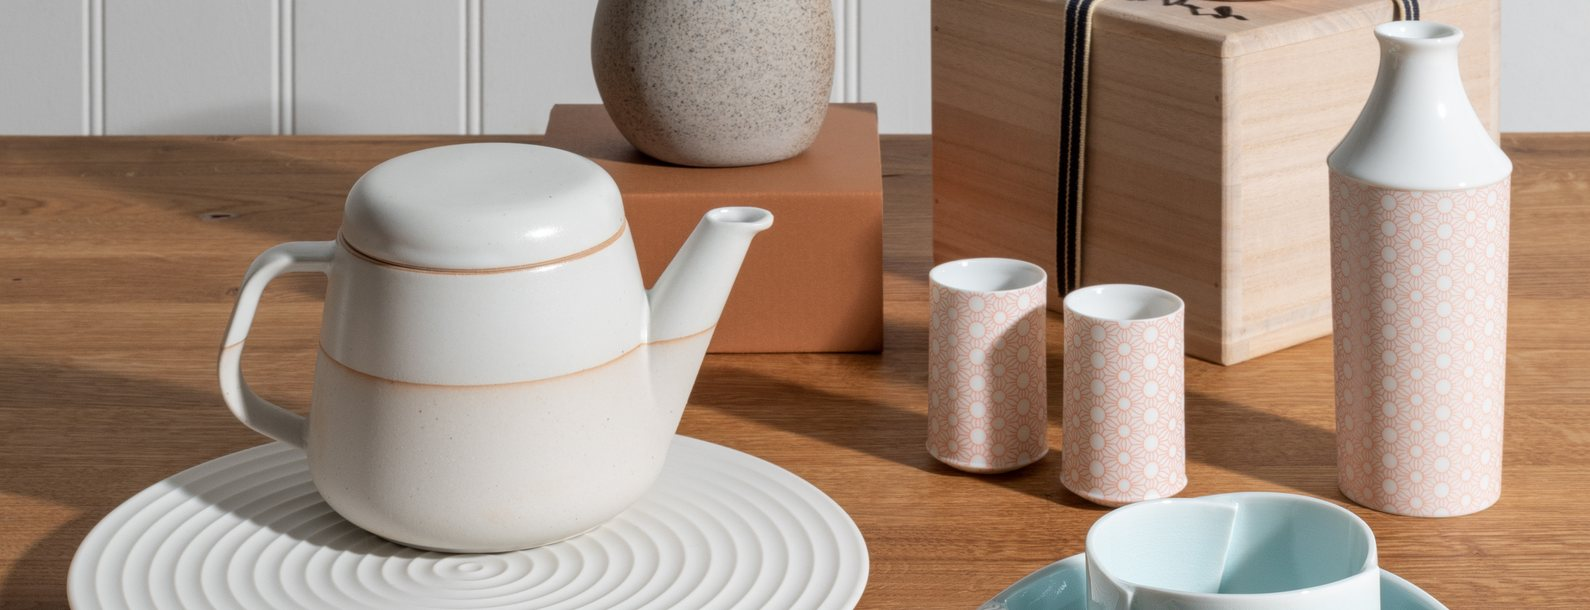 London Craft Week 2019 - Everything You Need To Know london craft week London Craft Week 2019 – Everything You Need To Know London Craft Week 2019 Are You Ready to See the Best of Fine Crafts Heal Gifu